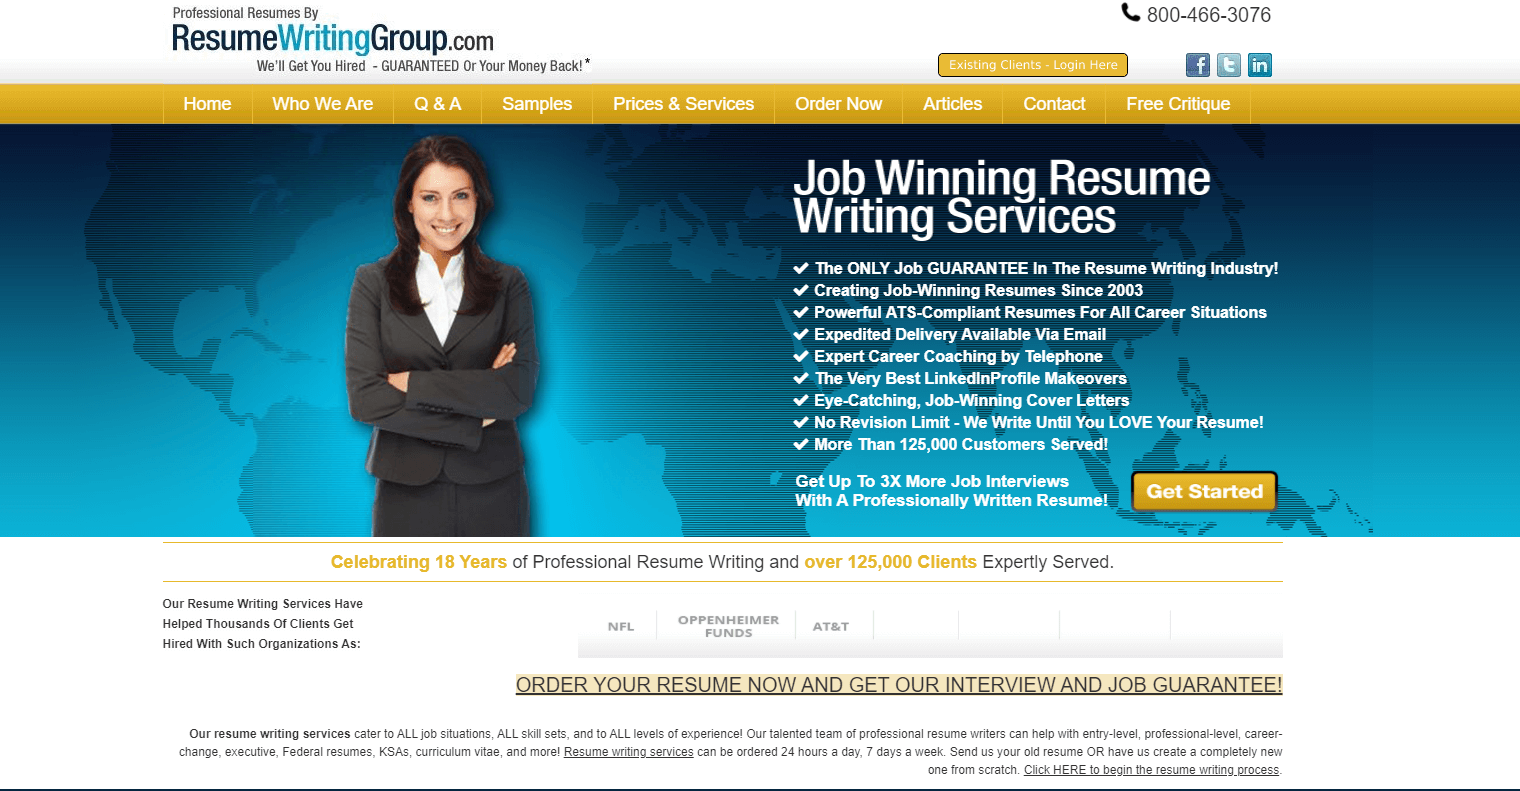 resumewritinggroup.com Review by TopResumeWritingServices